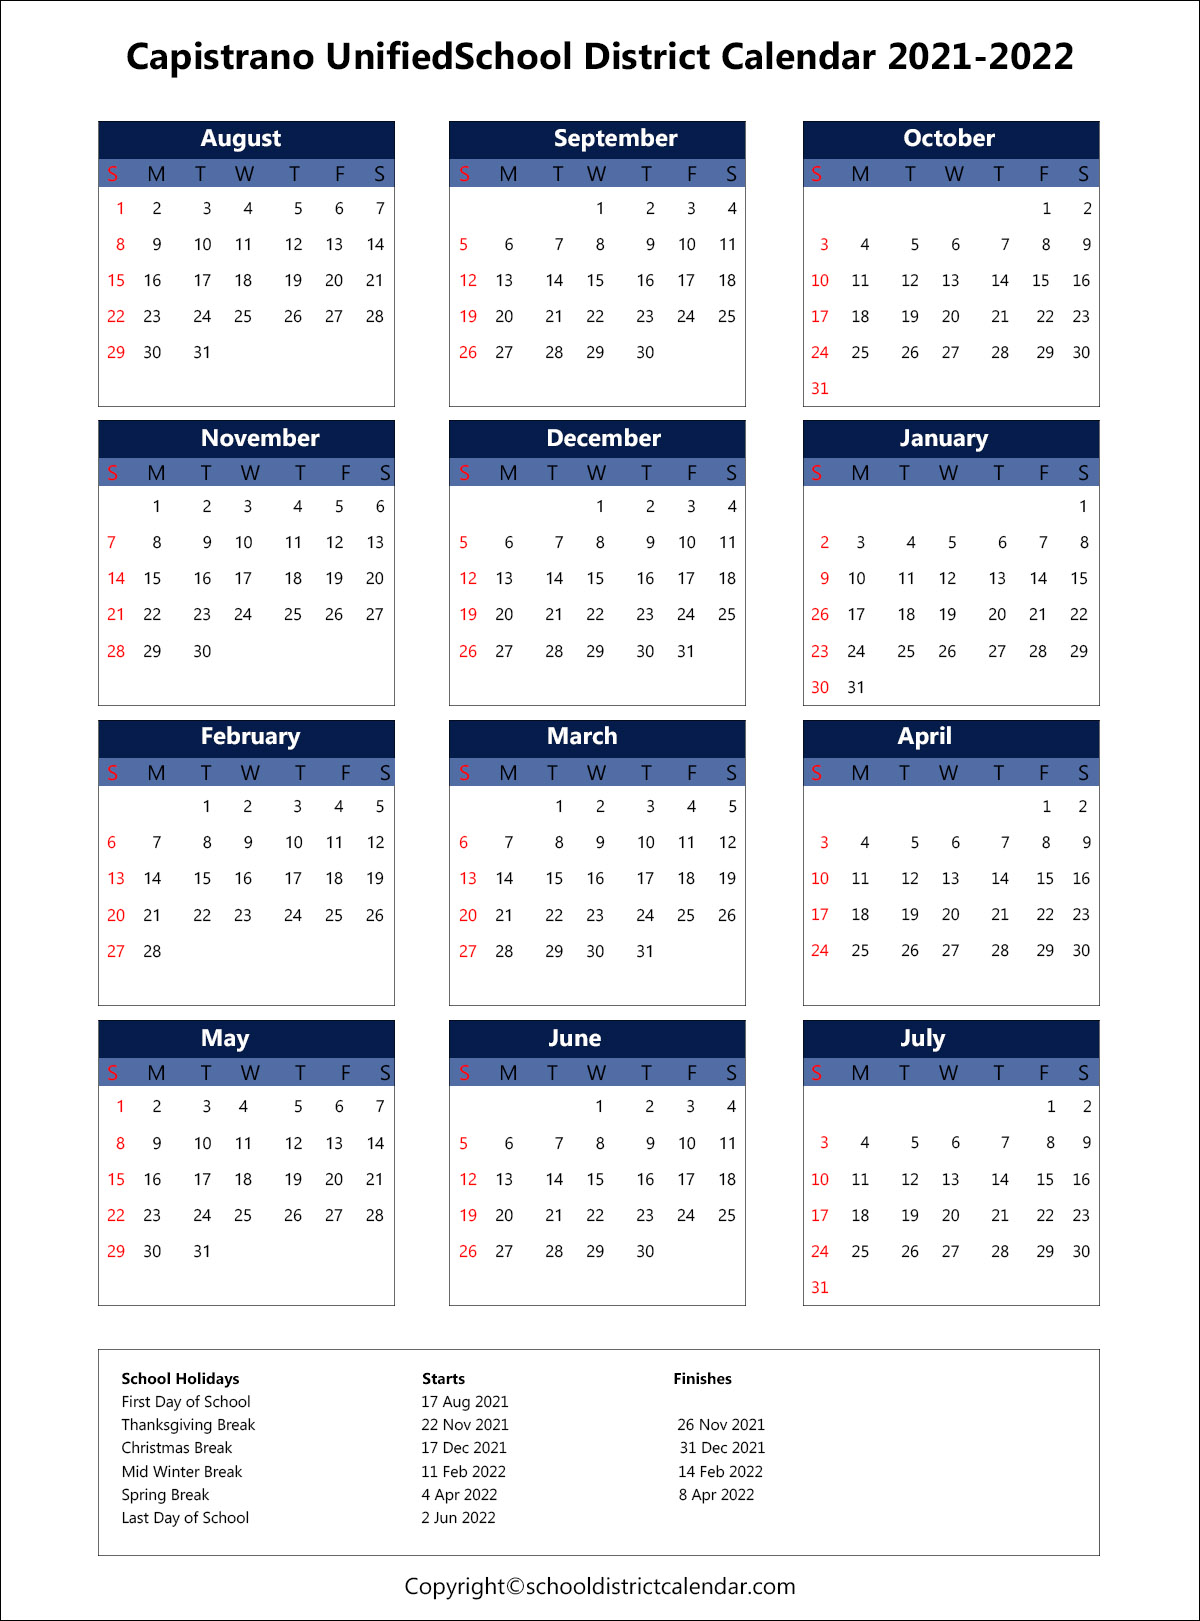 Capistrano Unified School District Calendar 2021